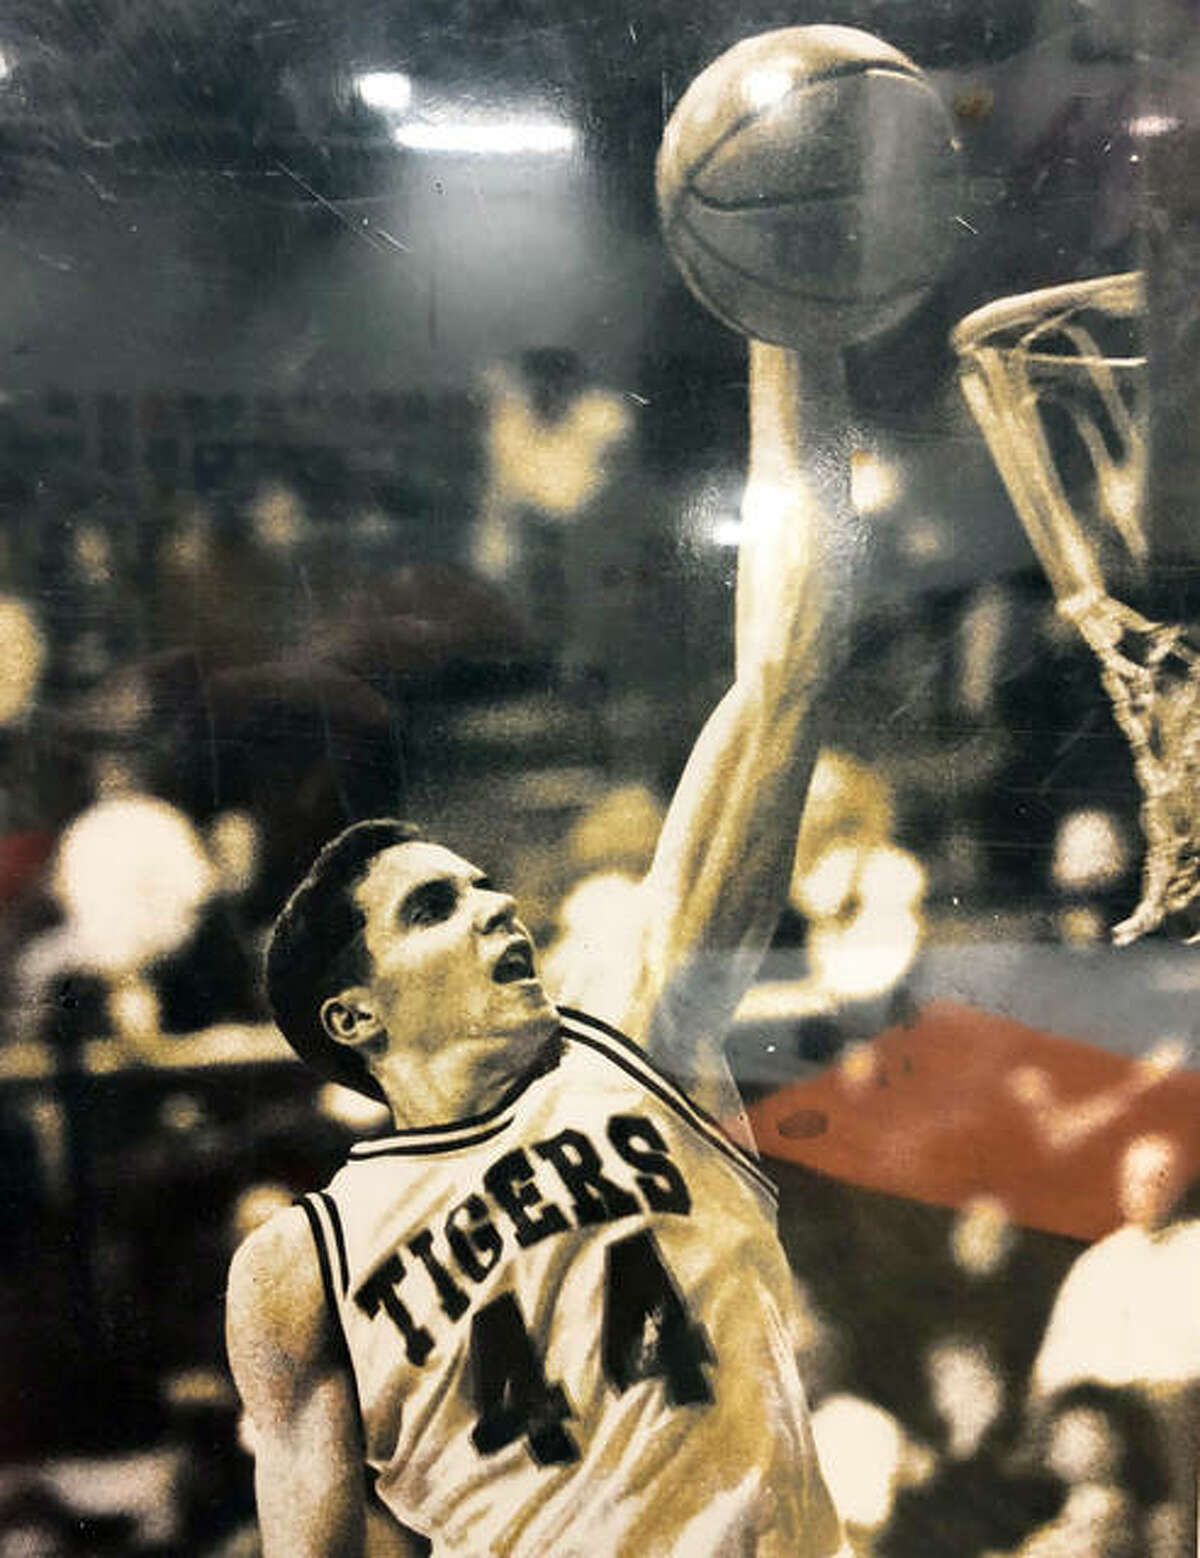 Joe Semith, a 1996 Edwardsville High School graduate, dunks the ball during his basketball playing days at EHS.